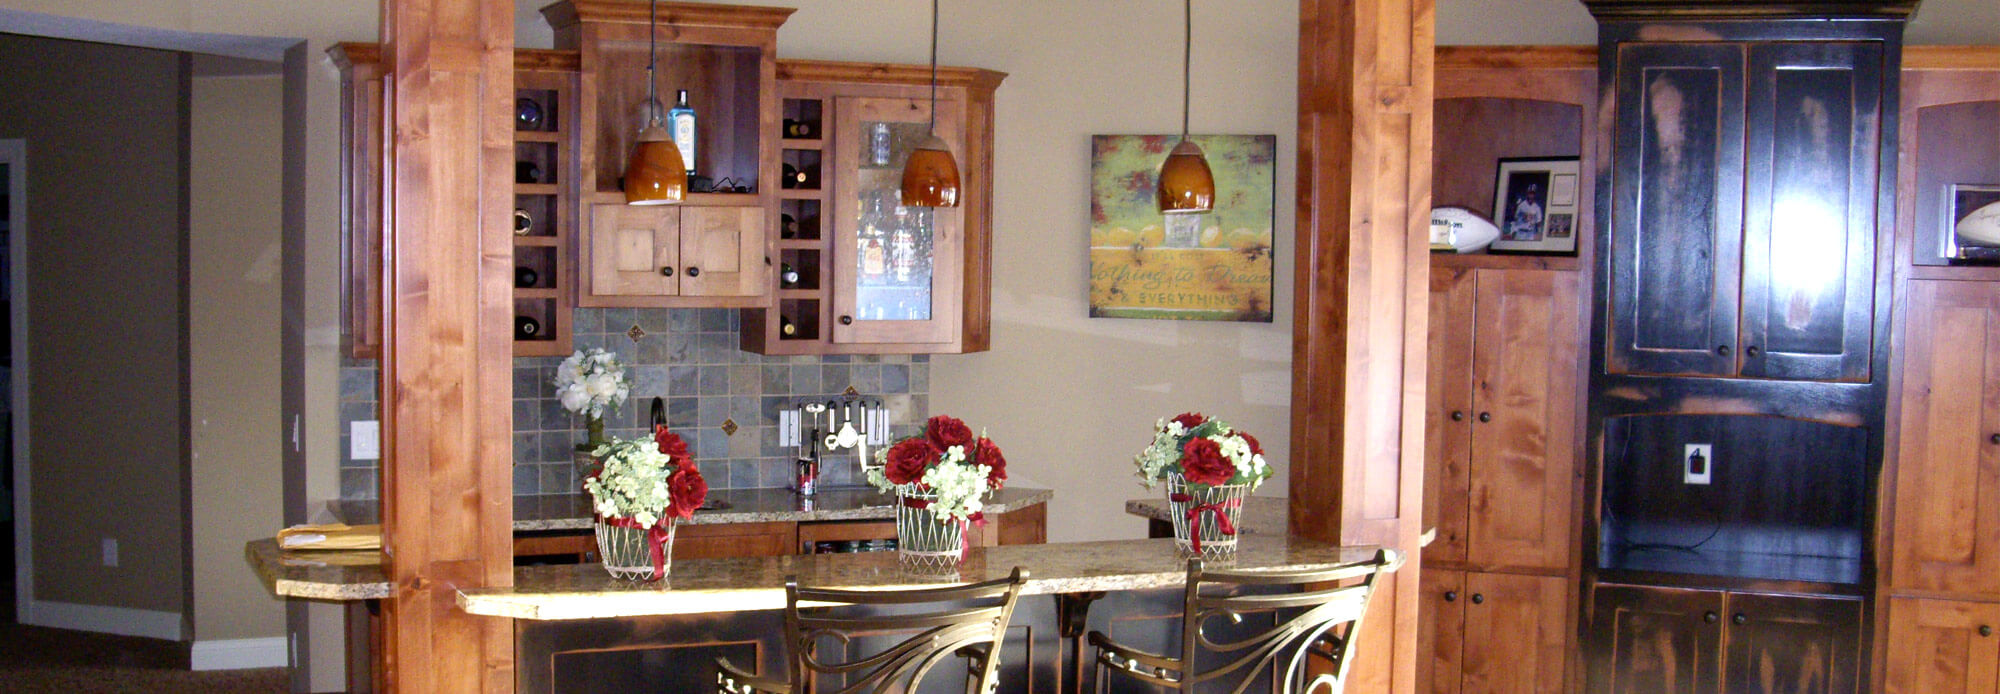 Beau Over 20 Years Of Experience. Kitchen With Custom Wood Cabinets